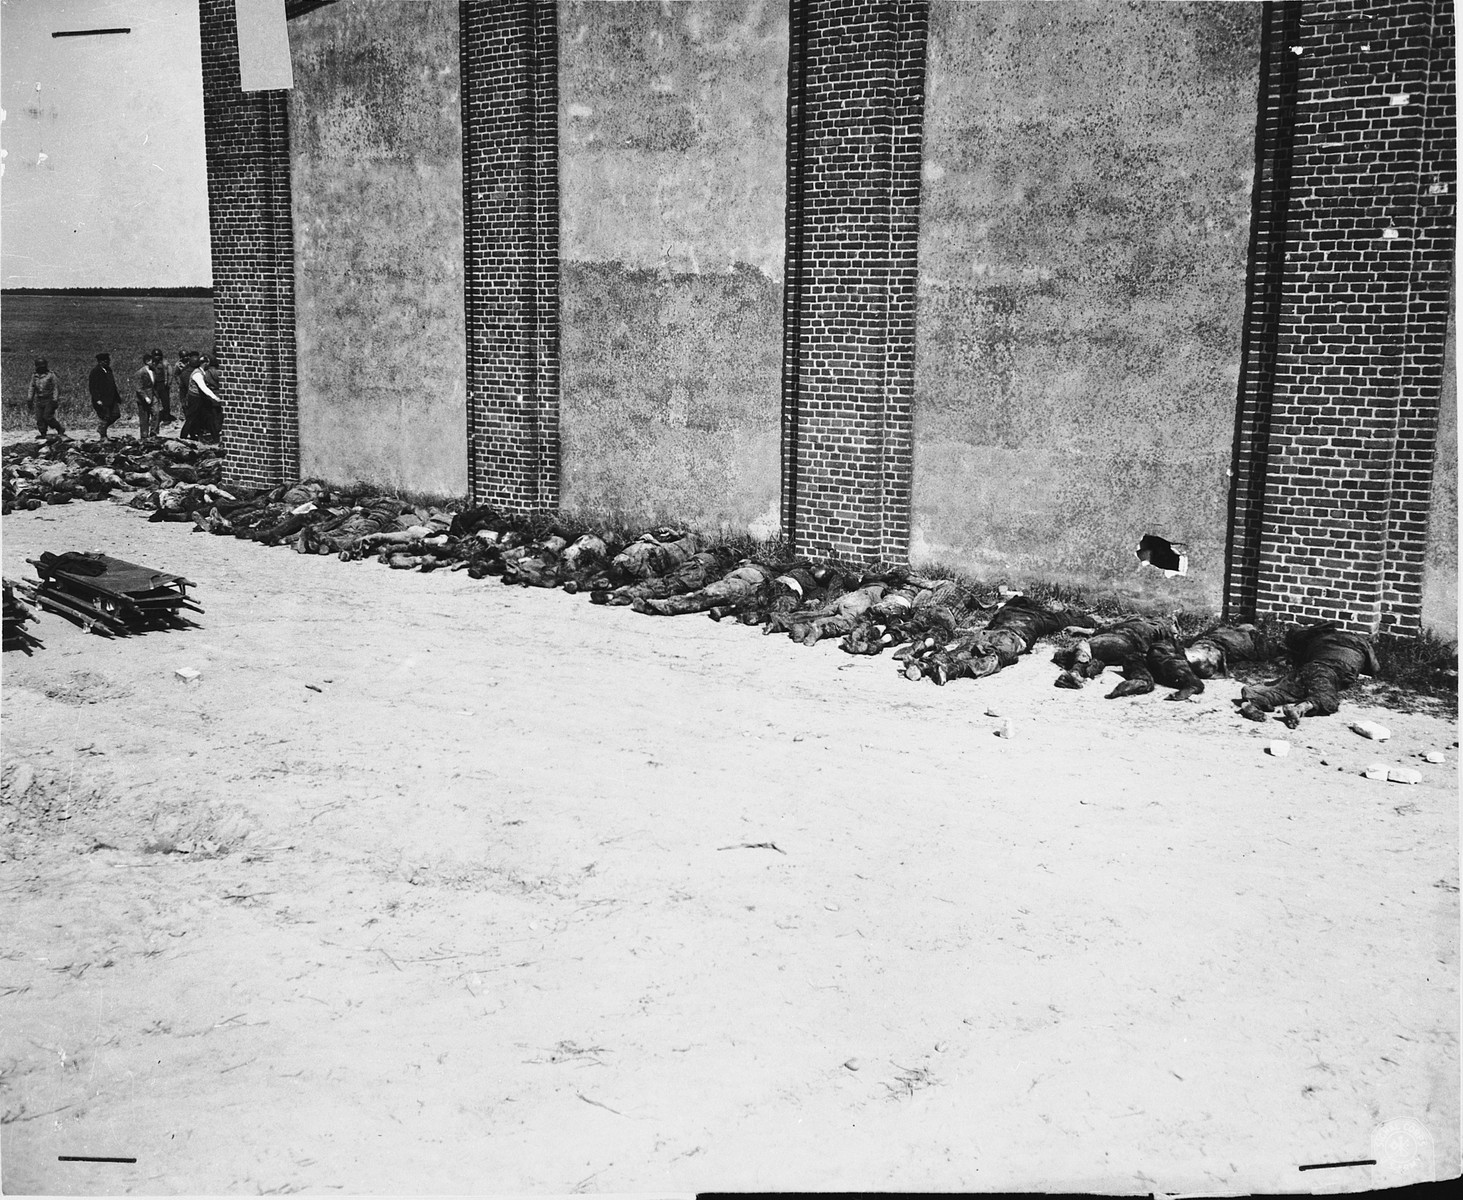 Corpses lined up on the west side of the barn with a visible hole supposedly made by a Panzerfaust.  In the background German civilians remove corpses from the barn.